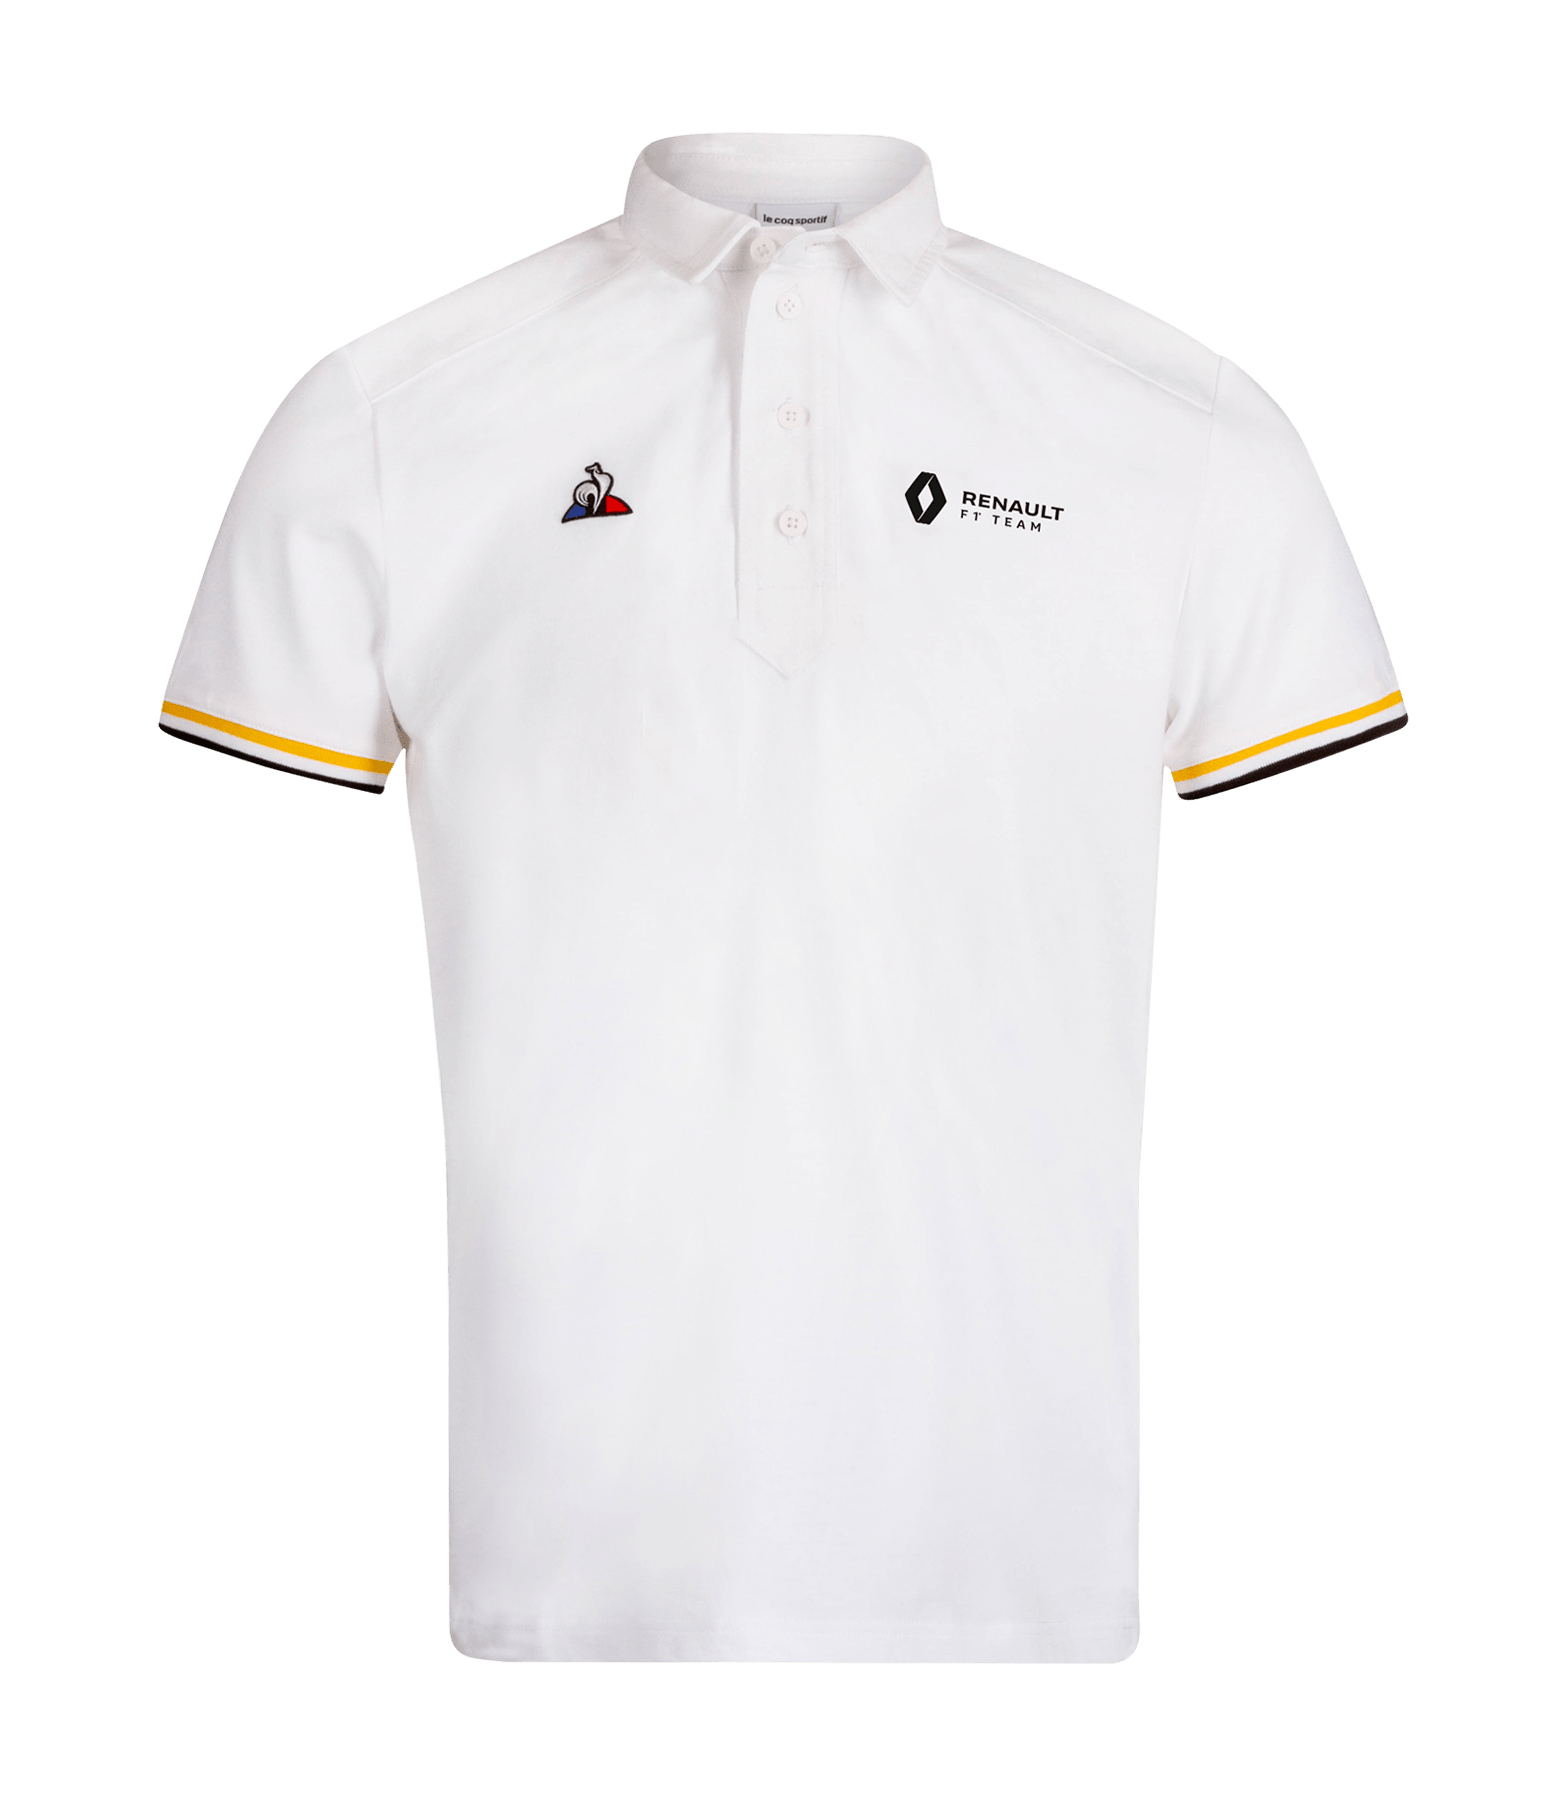 RENAULT F1® TEAM fan men's polo shirt - white